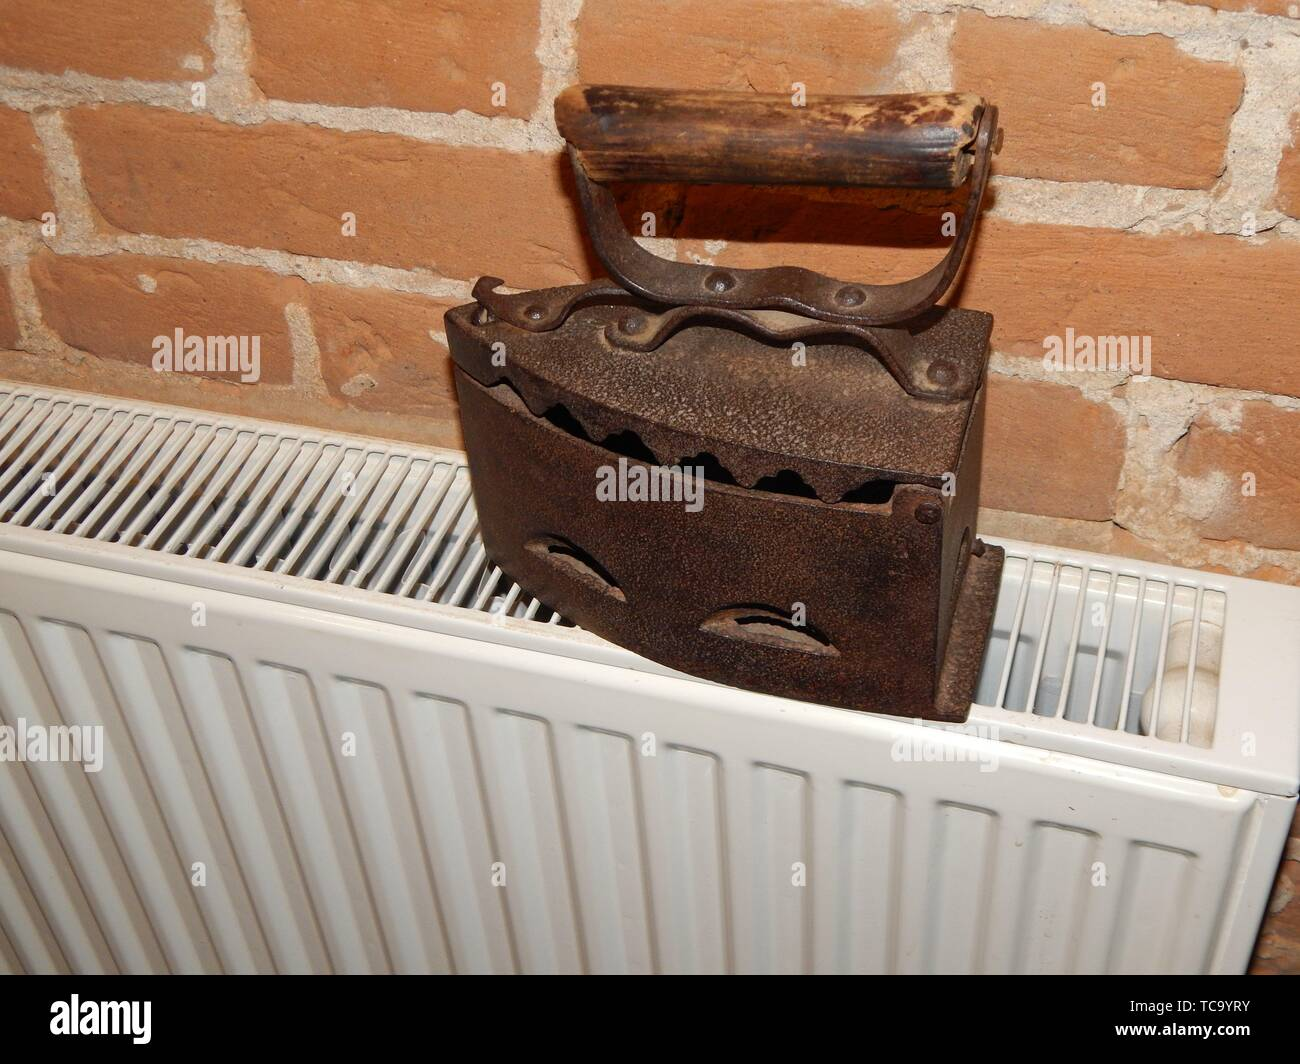 Antique iron in the interior for ironing clothes. - Stock Image